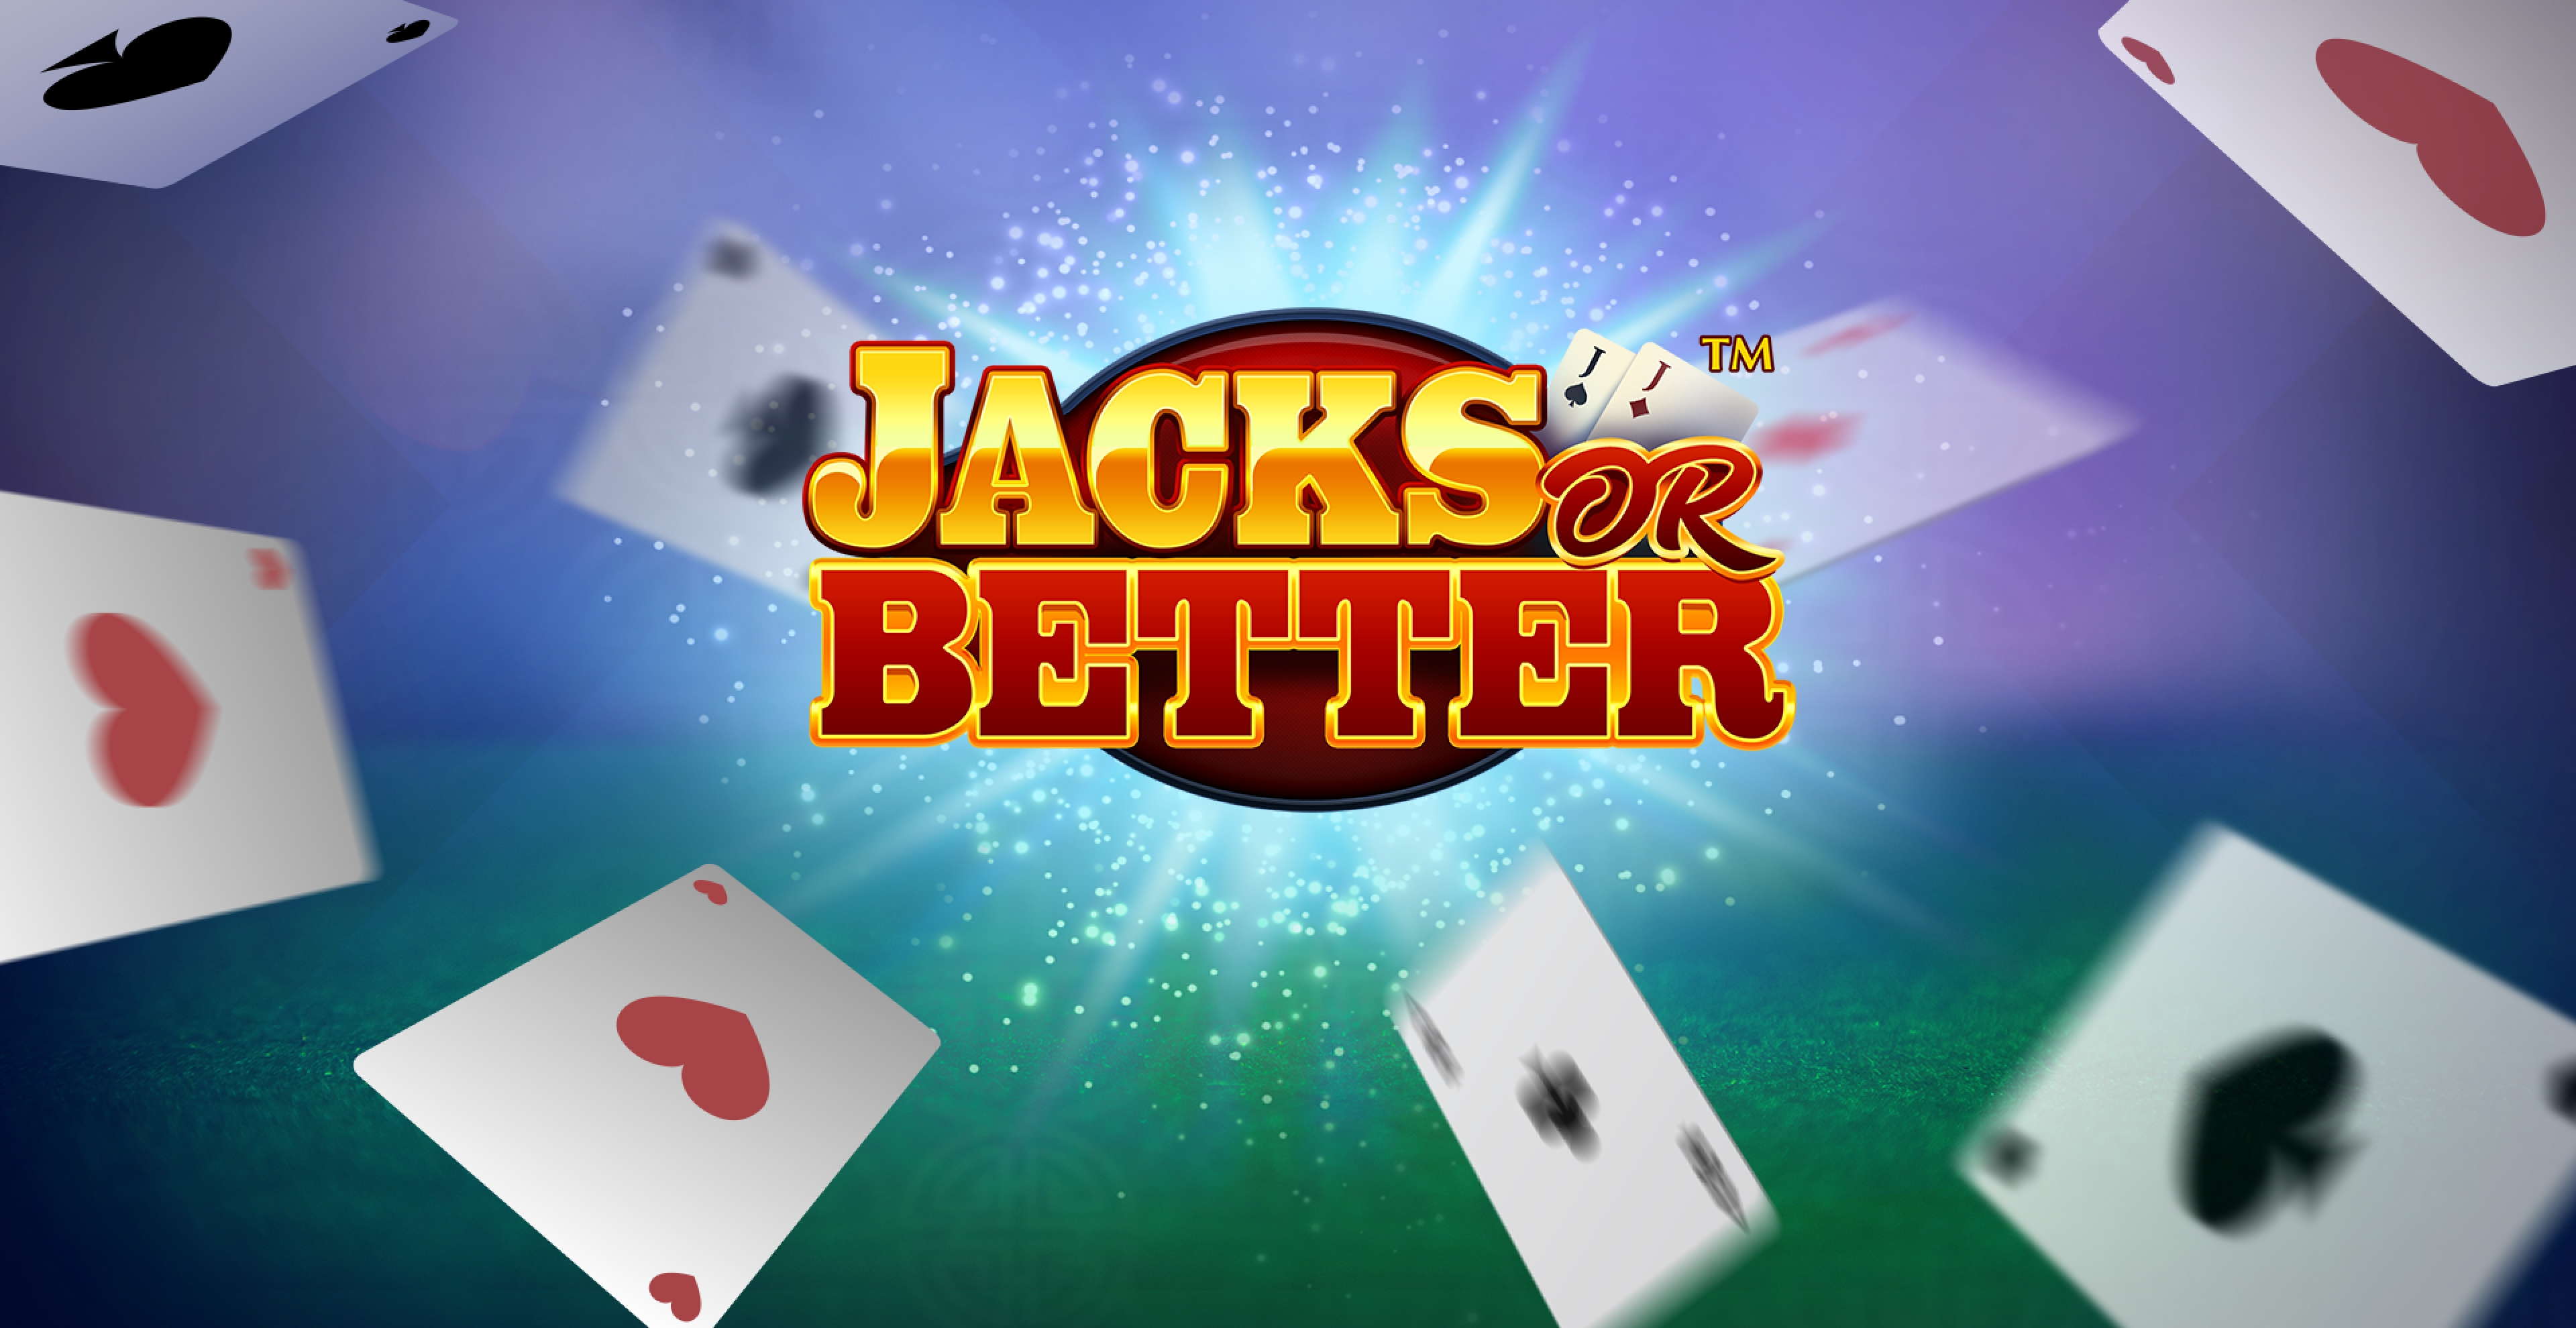 Win Money in Jacks or Better (Skywind Group) Free Slot Game by Skywind